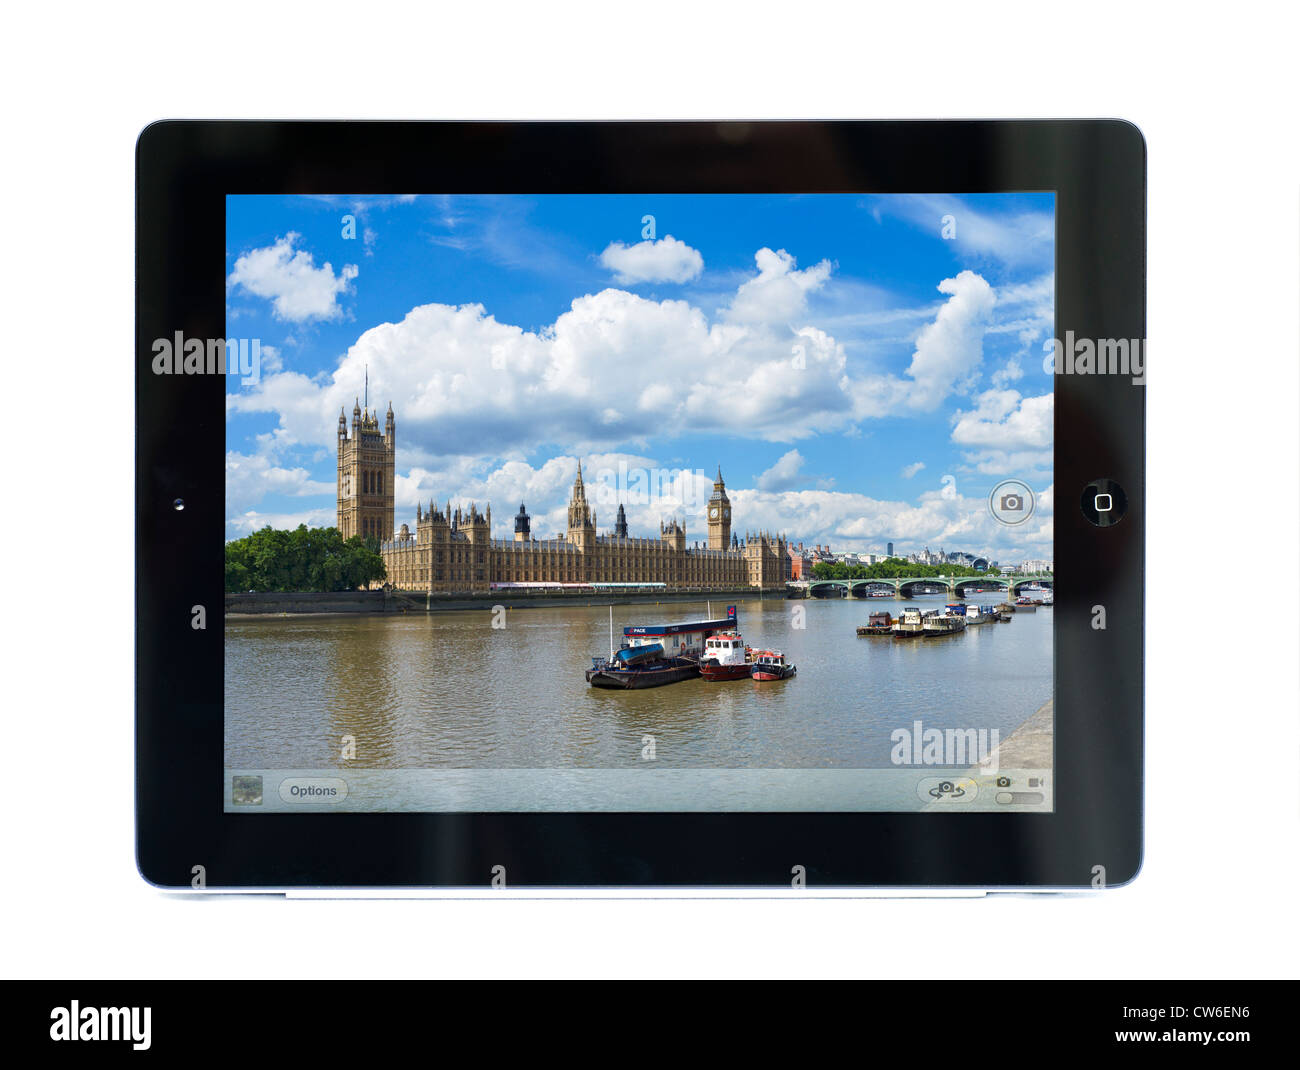 Camera on an Apple iPad 3 showing the Houses of Parliament, London, England - Stock Image